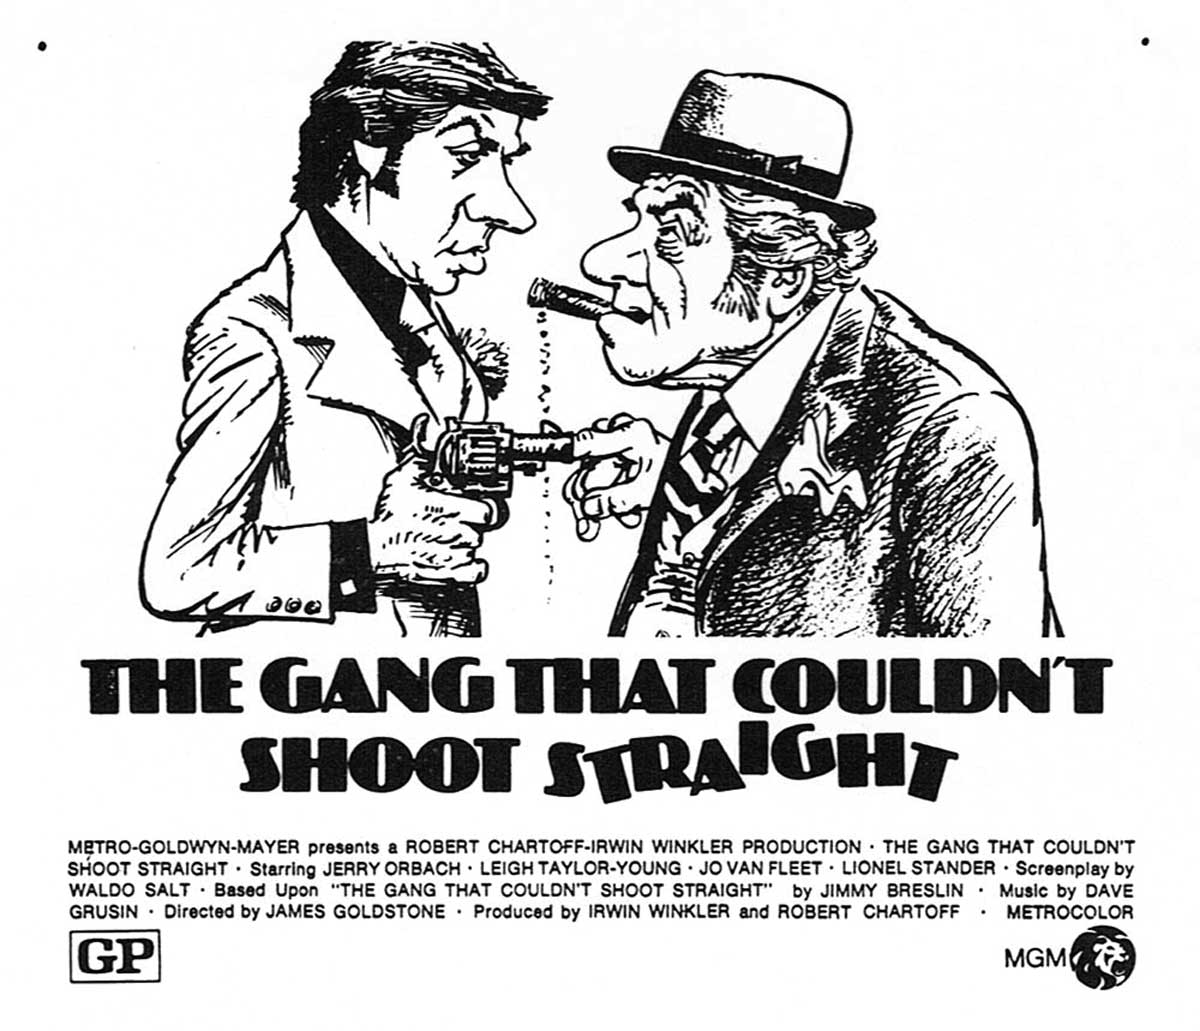 Gang-That-Couldnt-Shoot-ad